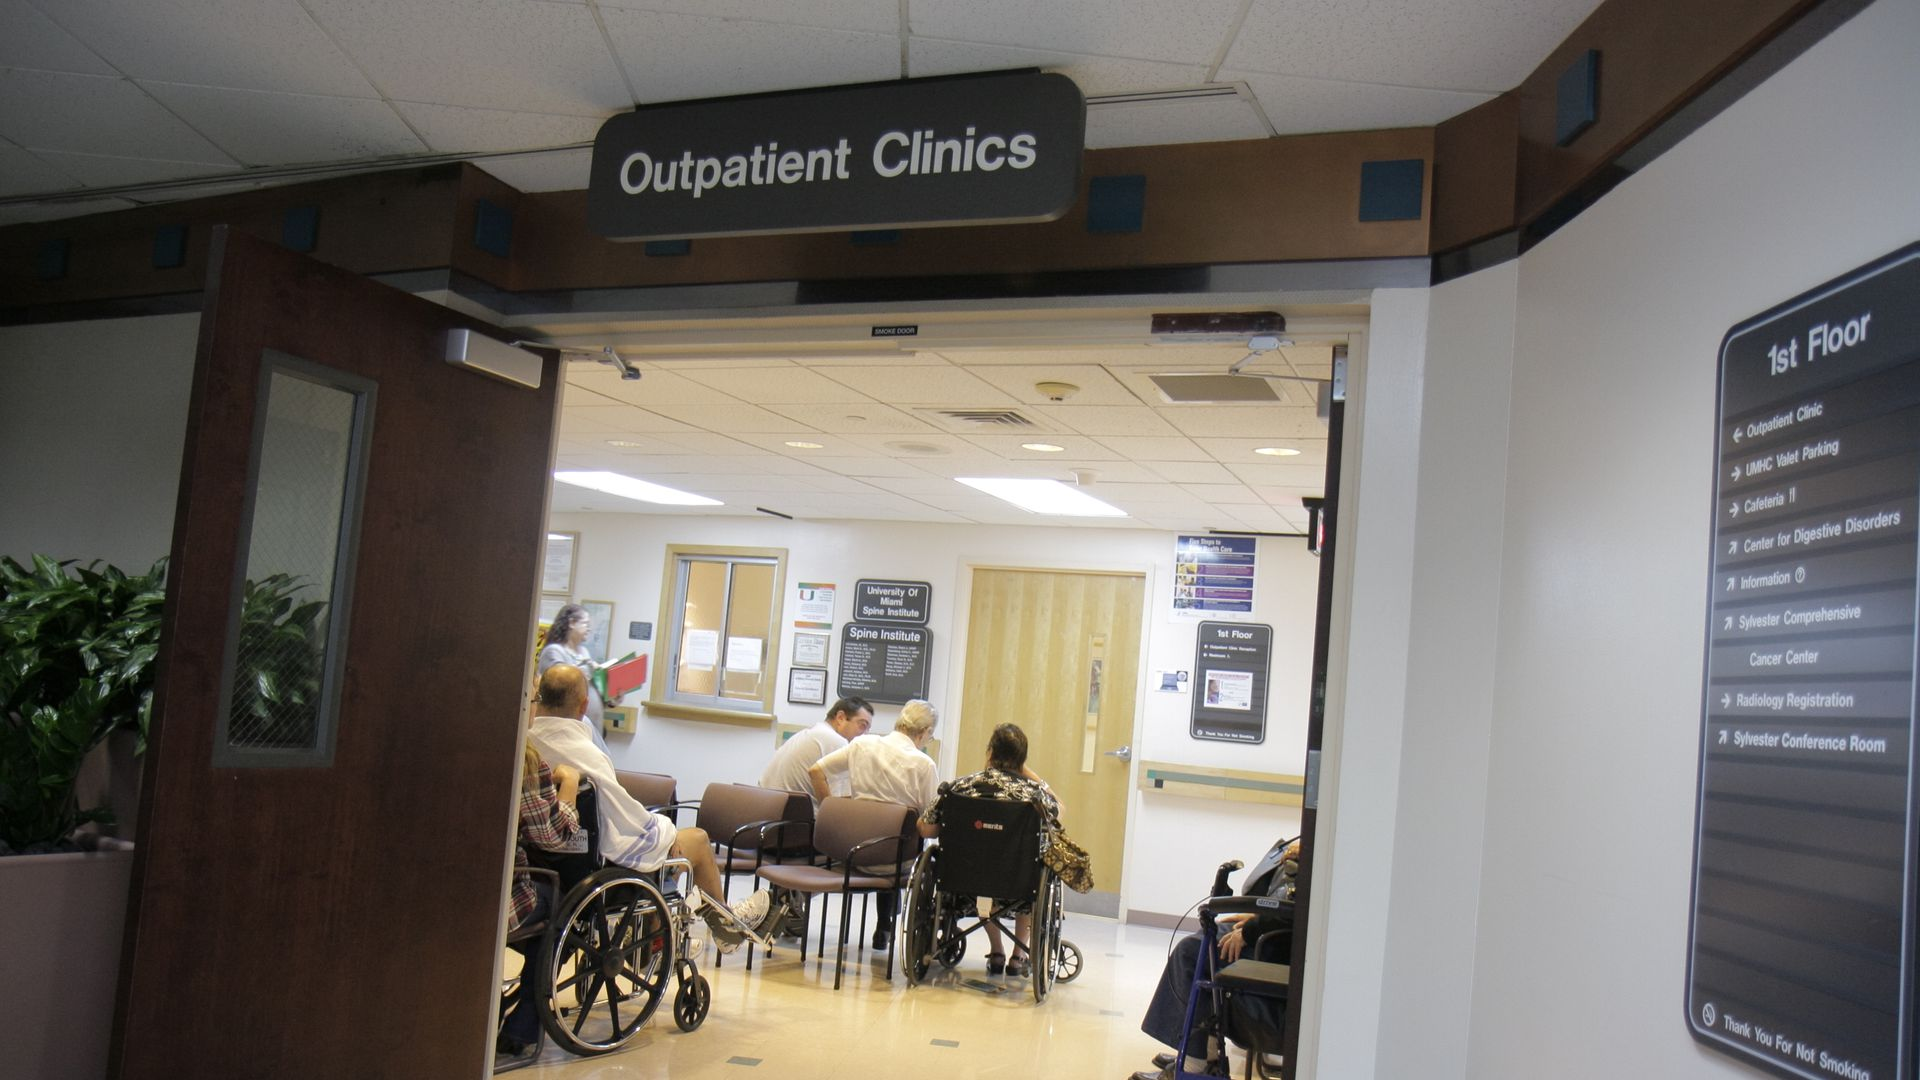 A hospital outpatient clinic where patients are waiting.